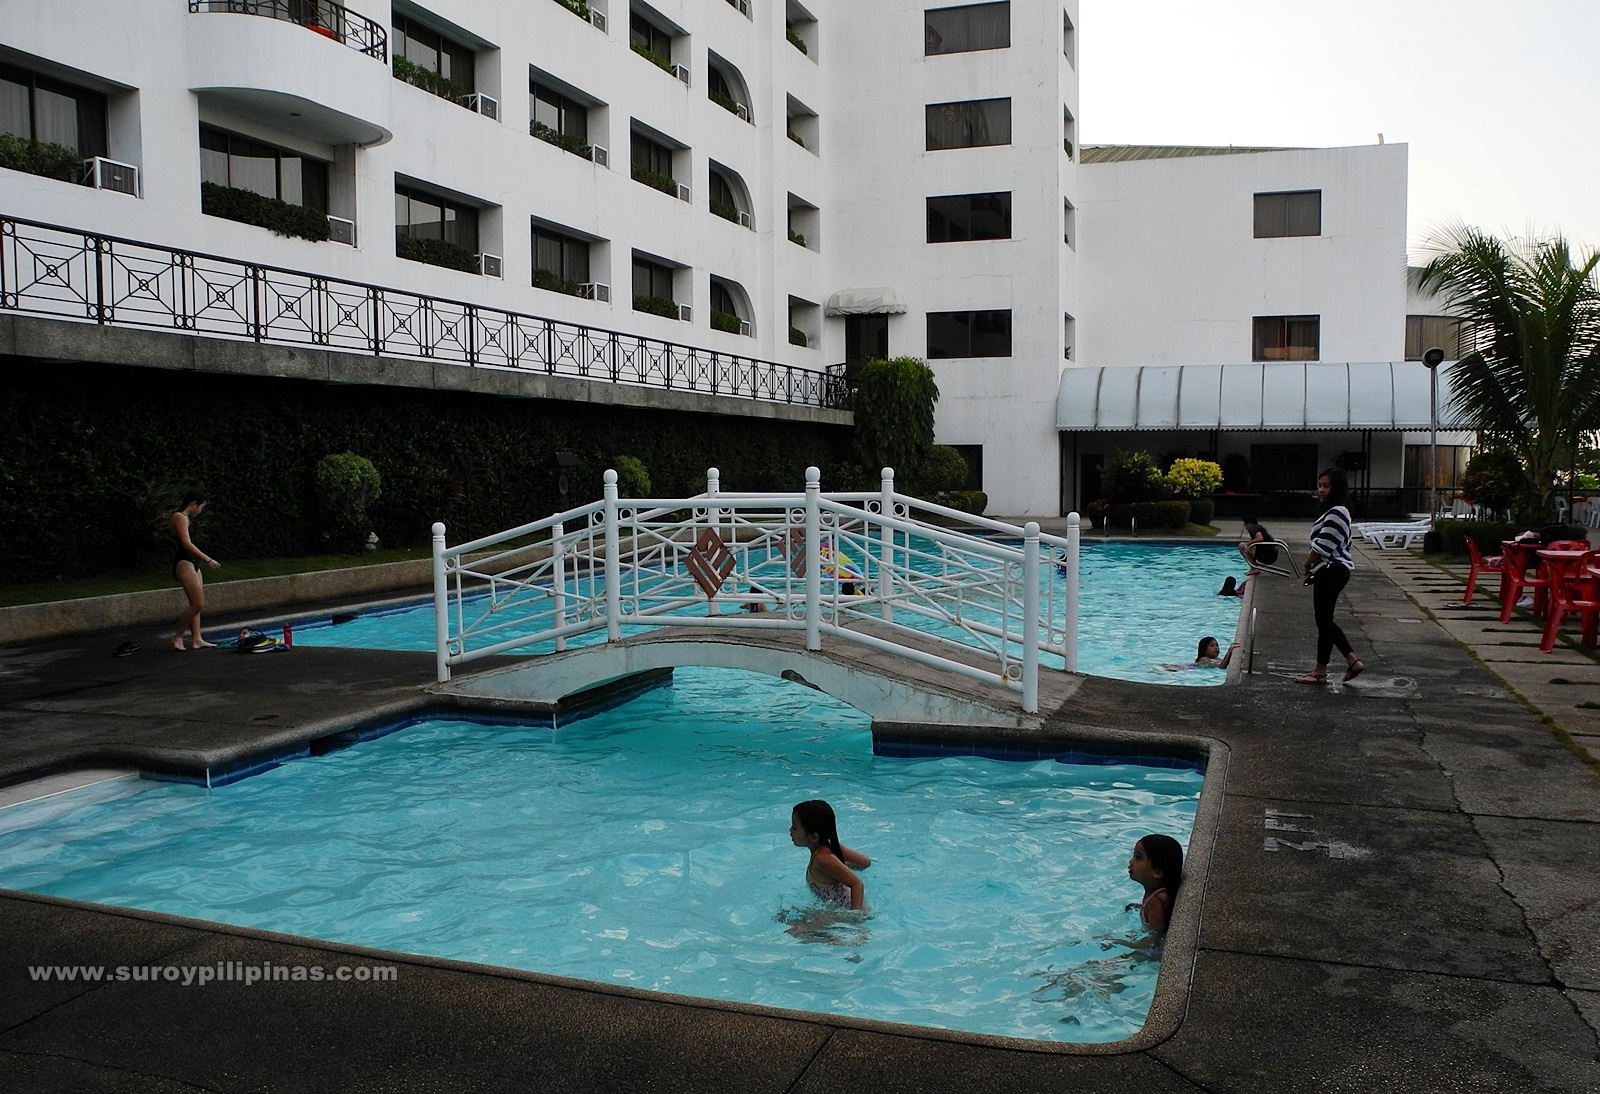 Suroy Pilipinas A Philippine Travel Blog Cagayan De Oro The Pryce Plaza Hotel Experience